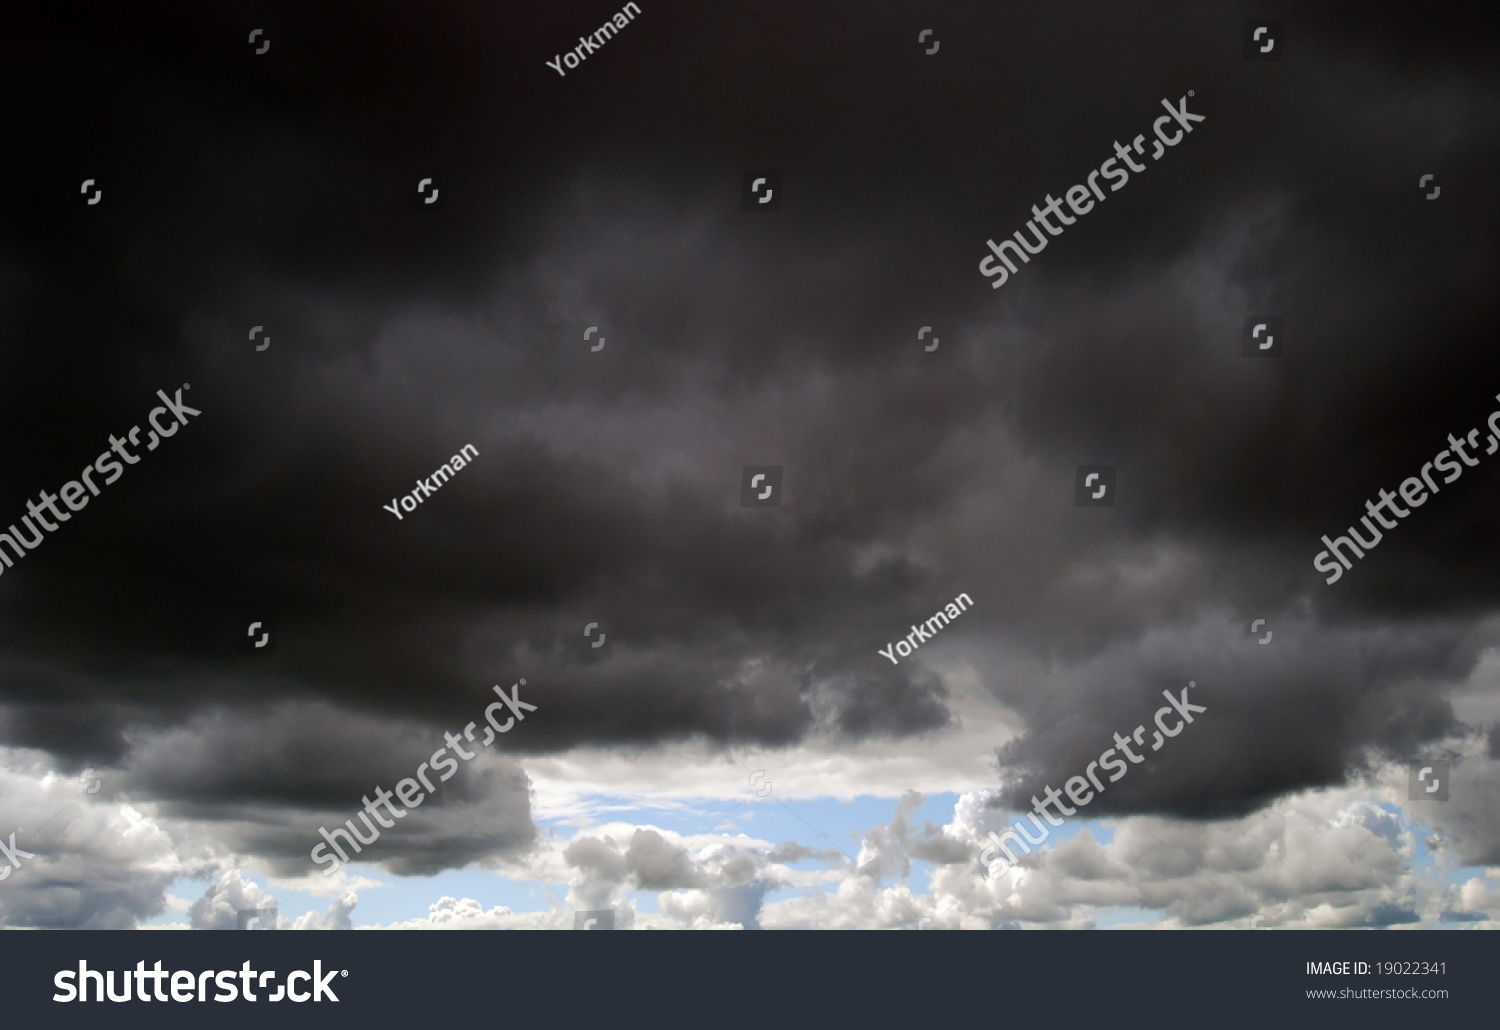 themes in when rain clouds gather Identity in wrcg identity is a prominent theme in when rain clouds gather , by bessie head when rain clouds gather unit plan mrcummins student ideas on makhaya wrcg mrcummins student ideas on tribalism wrcg.